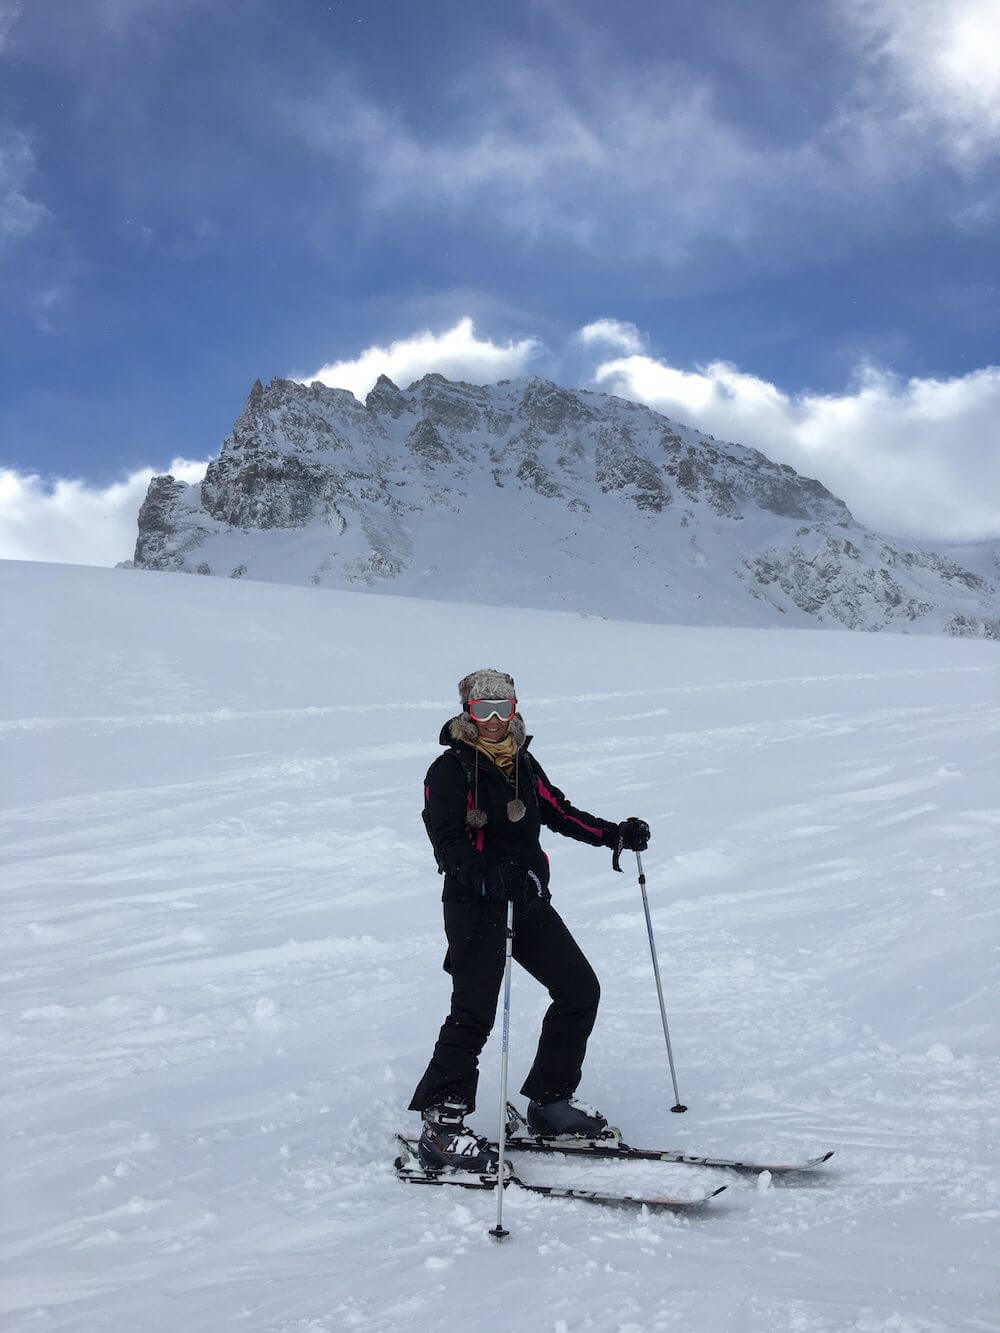 Me skiing in Tignes with Mark Warner